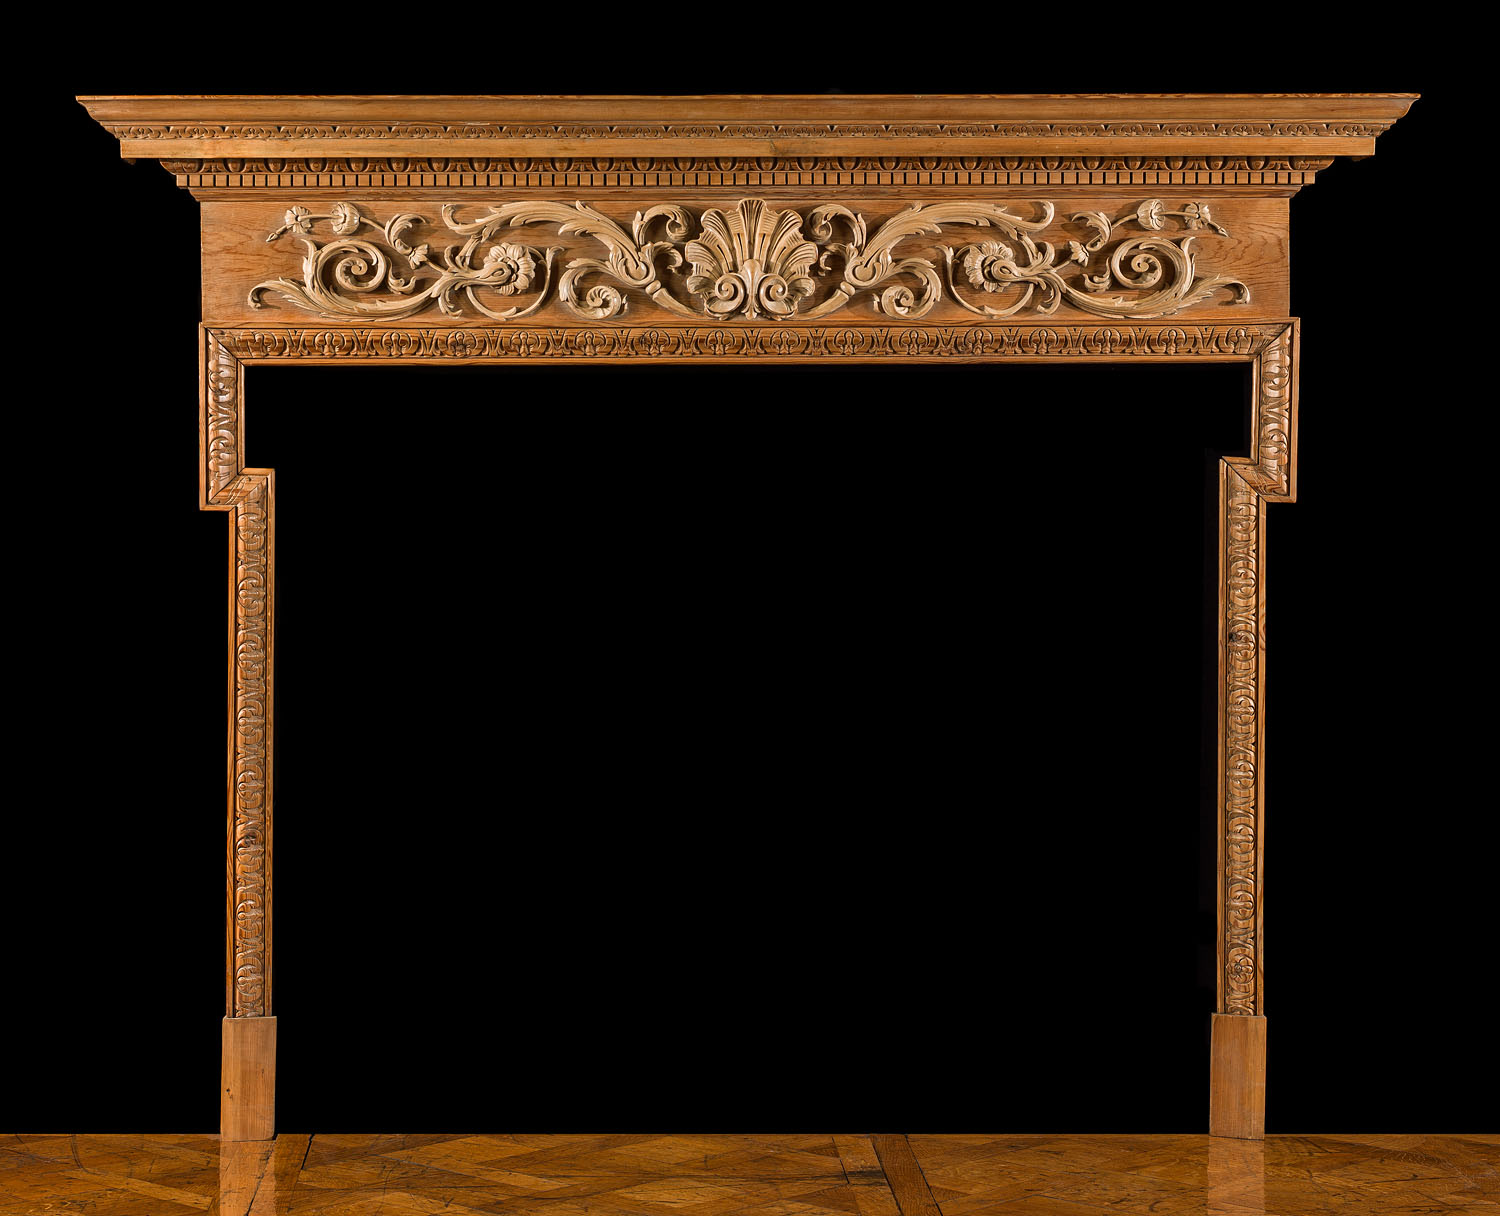 An antique Rococo style fireplace mantel